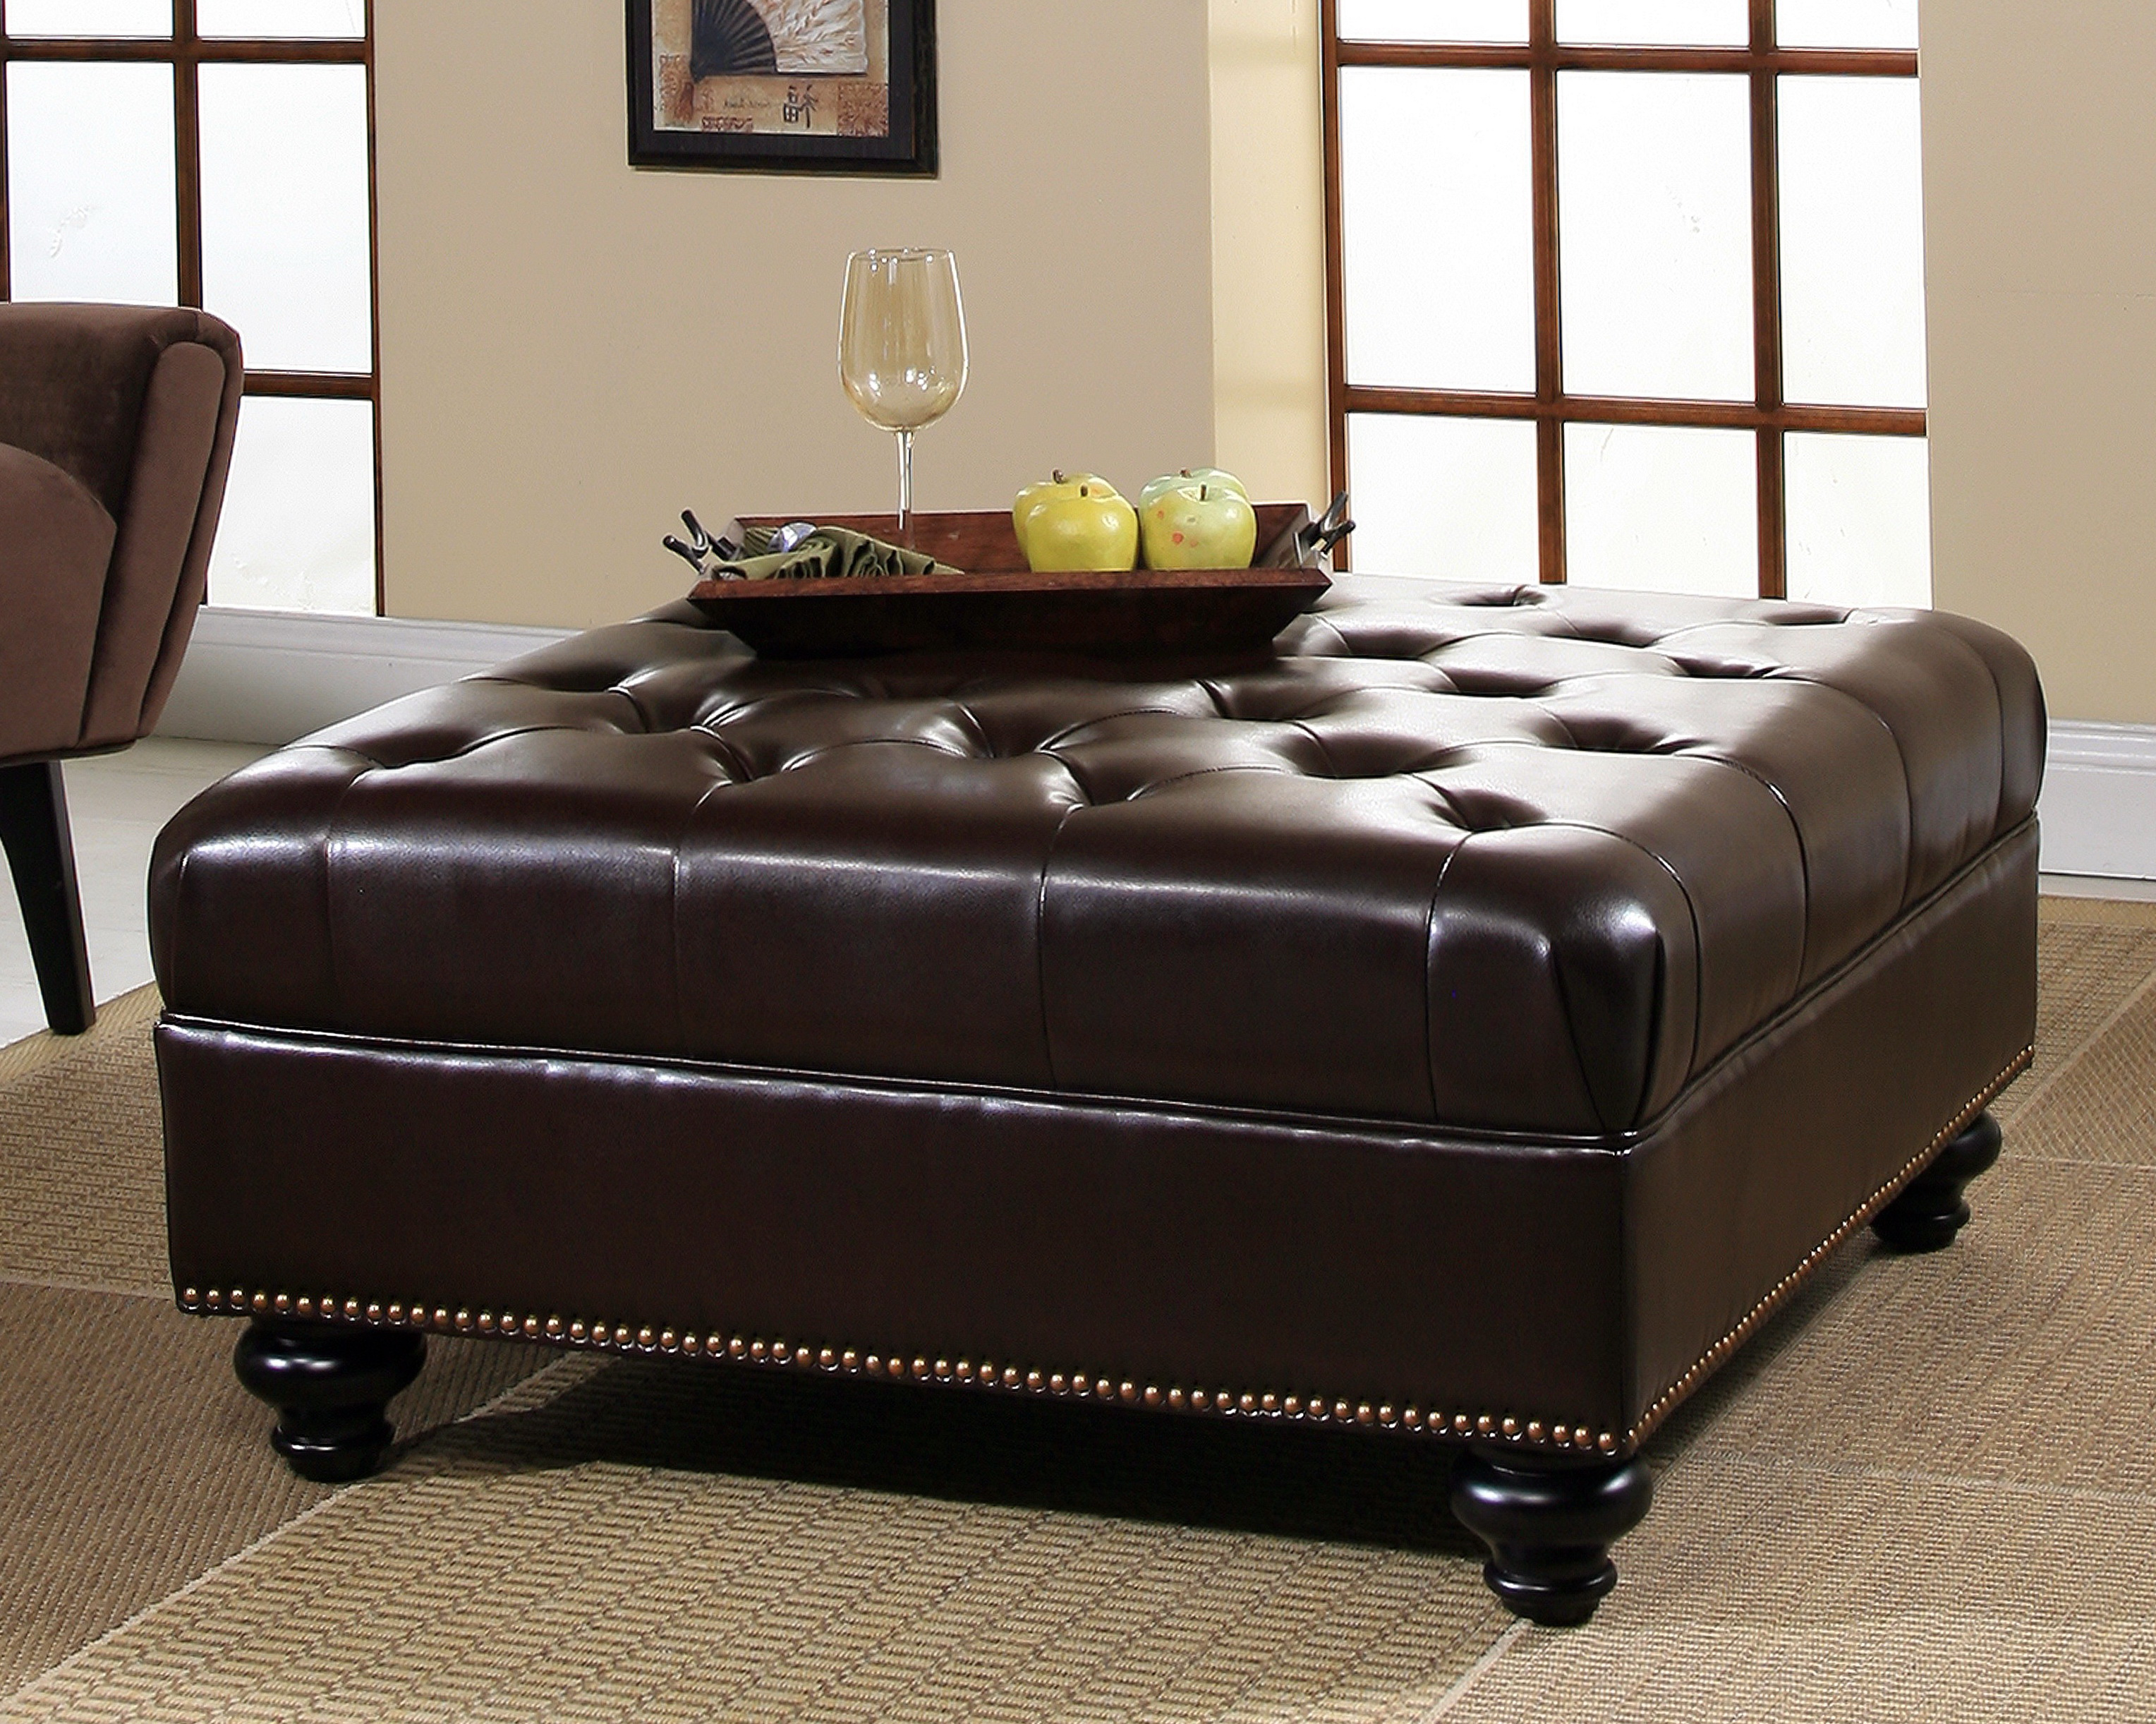 Leather Ottoman Furniture Guide - Leather Sofa Guide